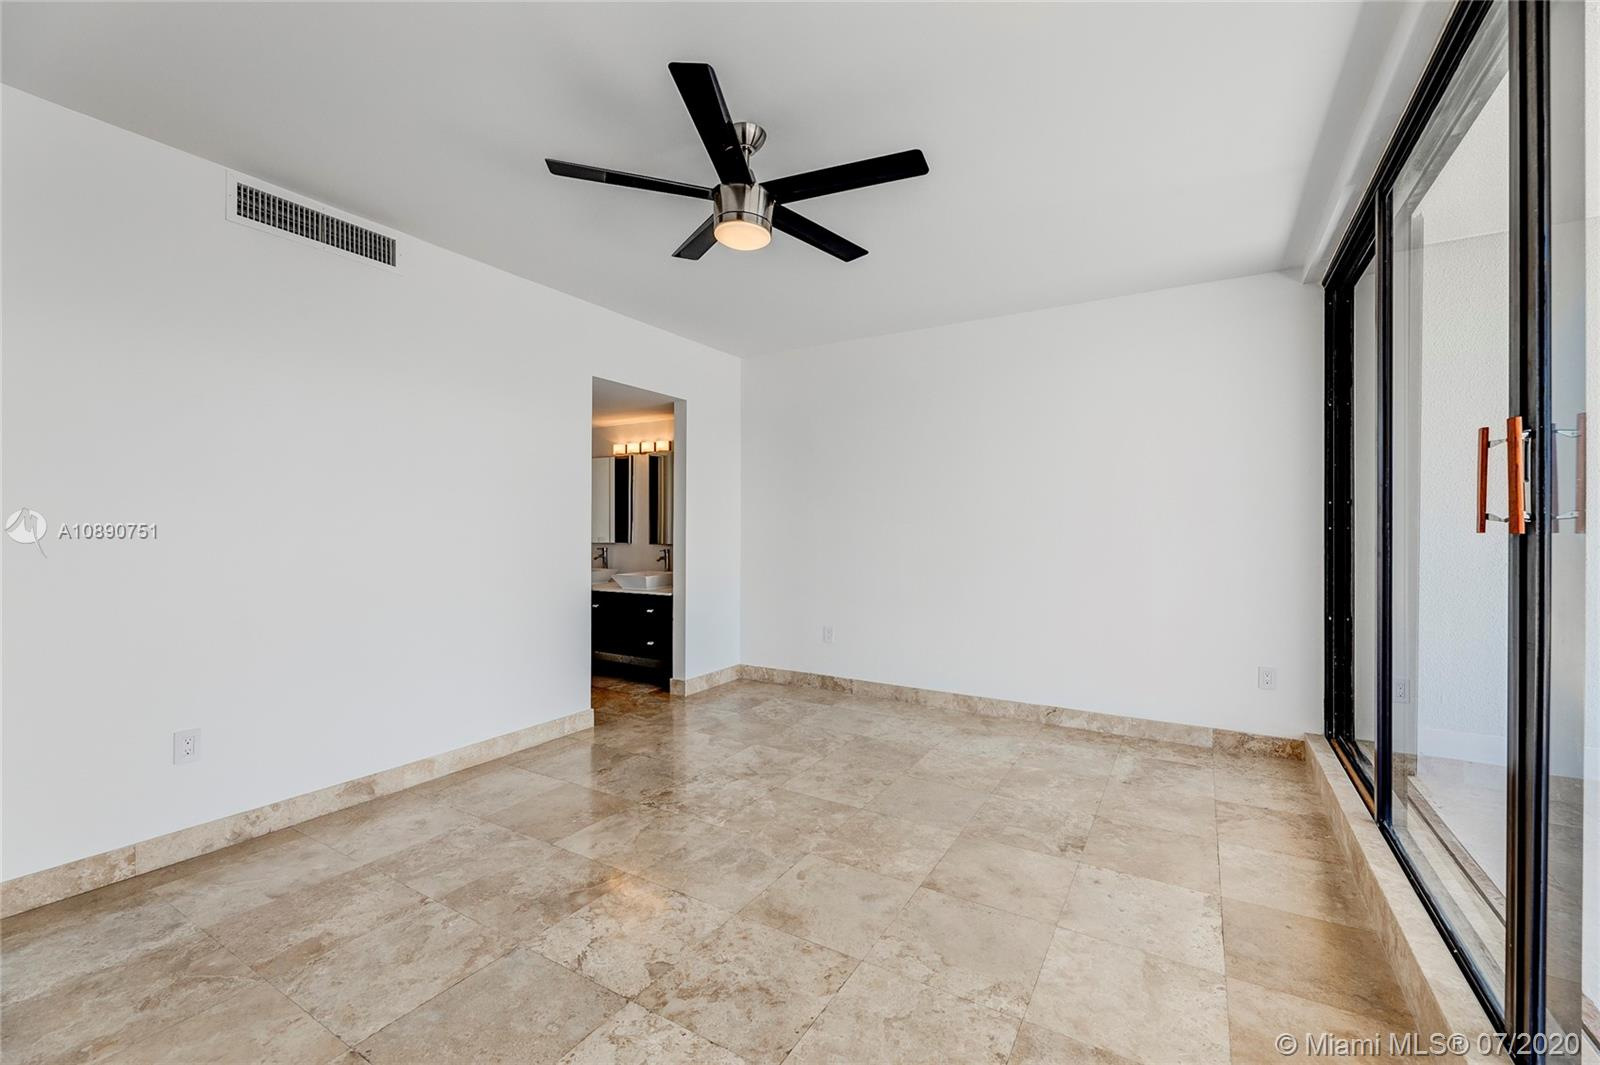 Photo of 425 Poinciana Island Drive #1444, Sunny Isles Beach, Florida, 33160 - Floor to ceiling windows provides direct access to terrace from primary bedroom